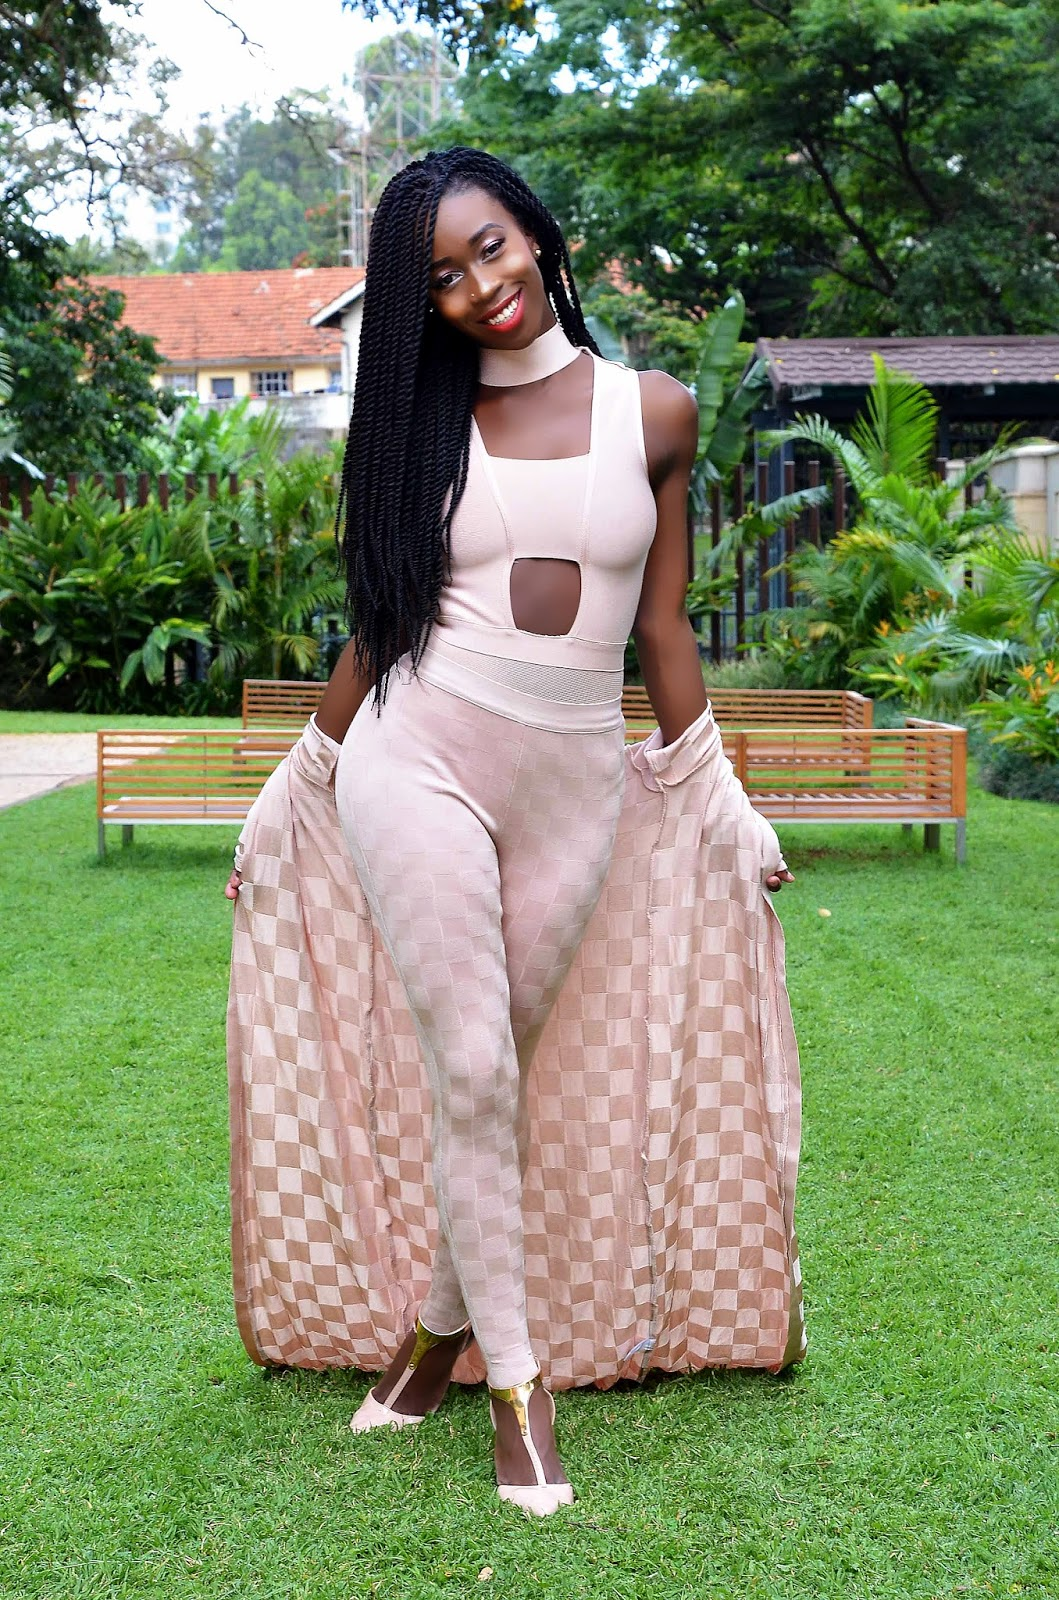 monochromatic look, how to wear all nude look, how to wear nude, how to style an all nude look, style with ezil, ezil, Kenyan fashion blogger, Style blogger, Black girls